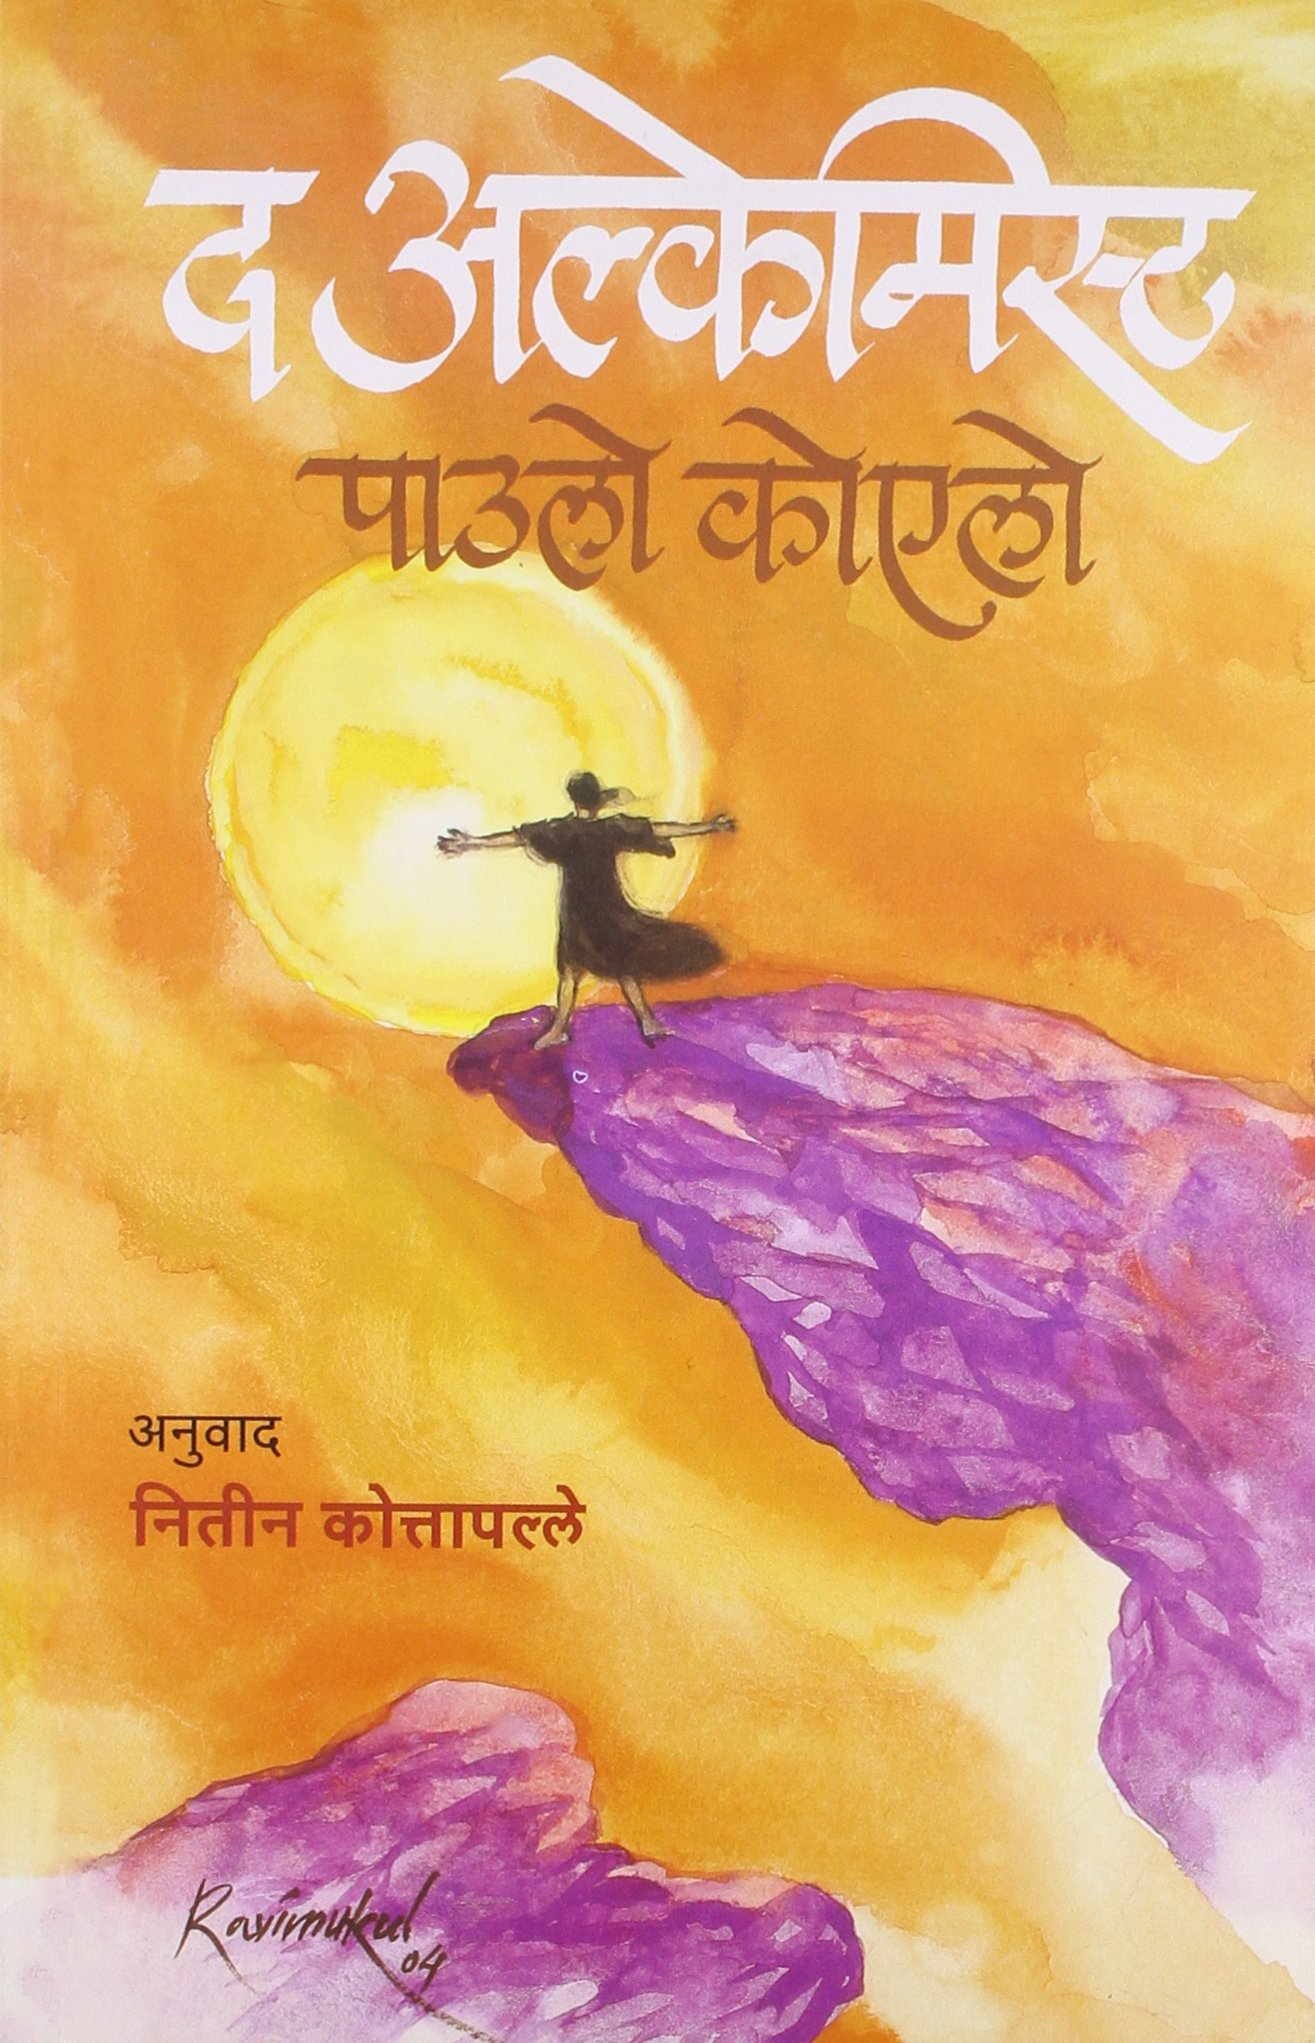 motivational story book in Hindi and English